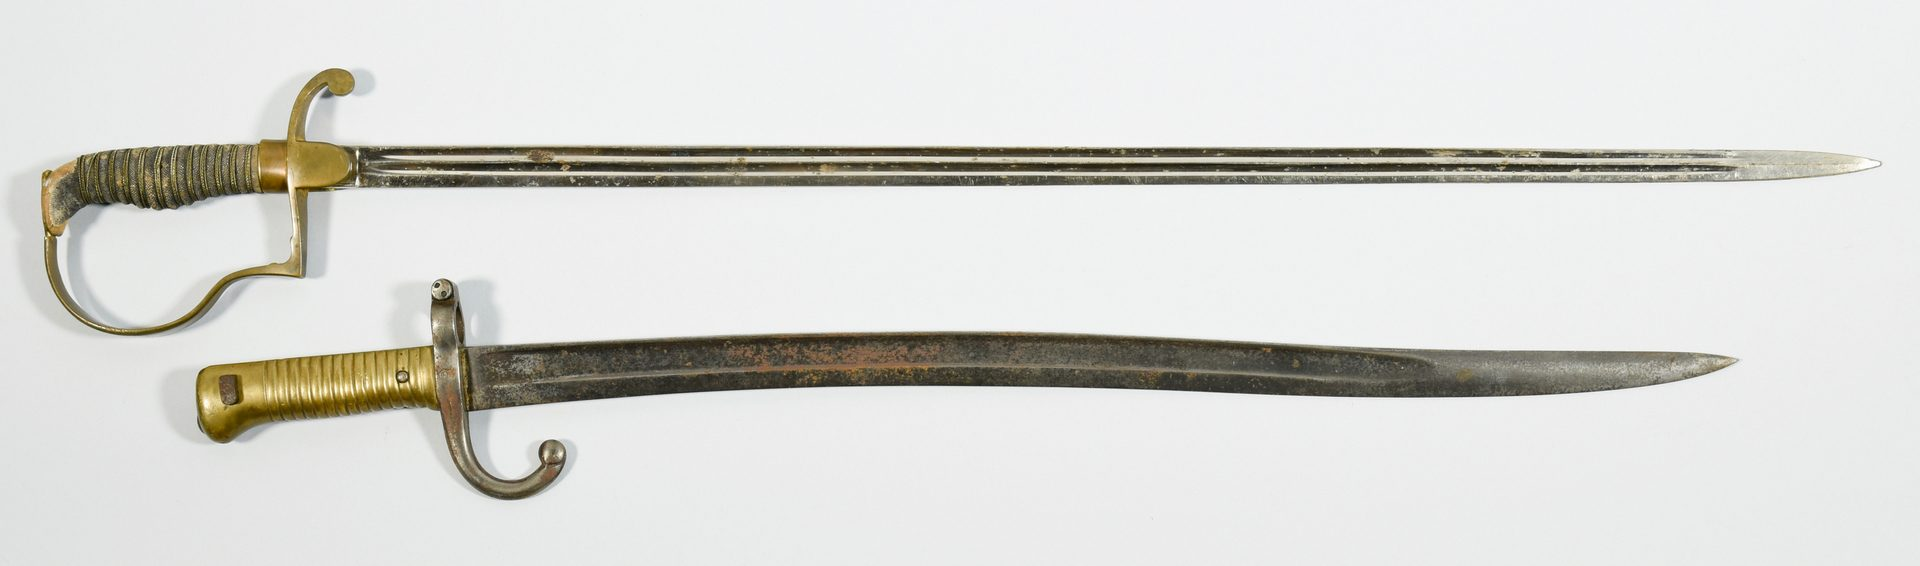 Lot 311: 4 European Swords and Bayonet